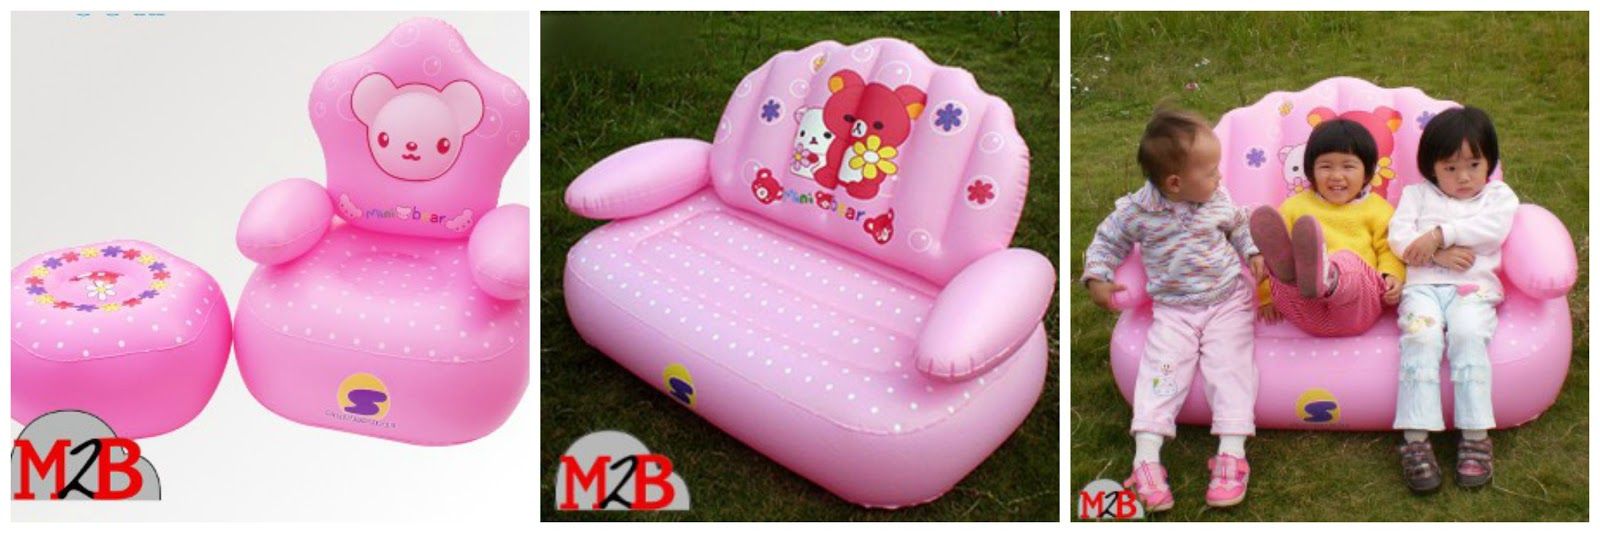 Inflatable furniture for kids - Luxury Round White Inflatable Sofa